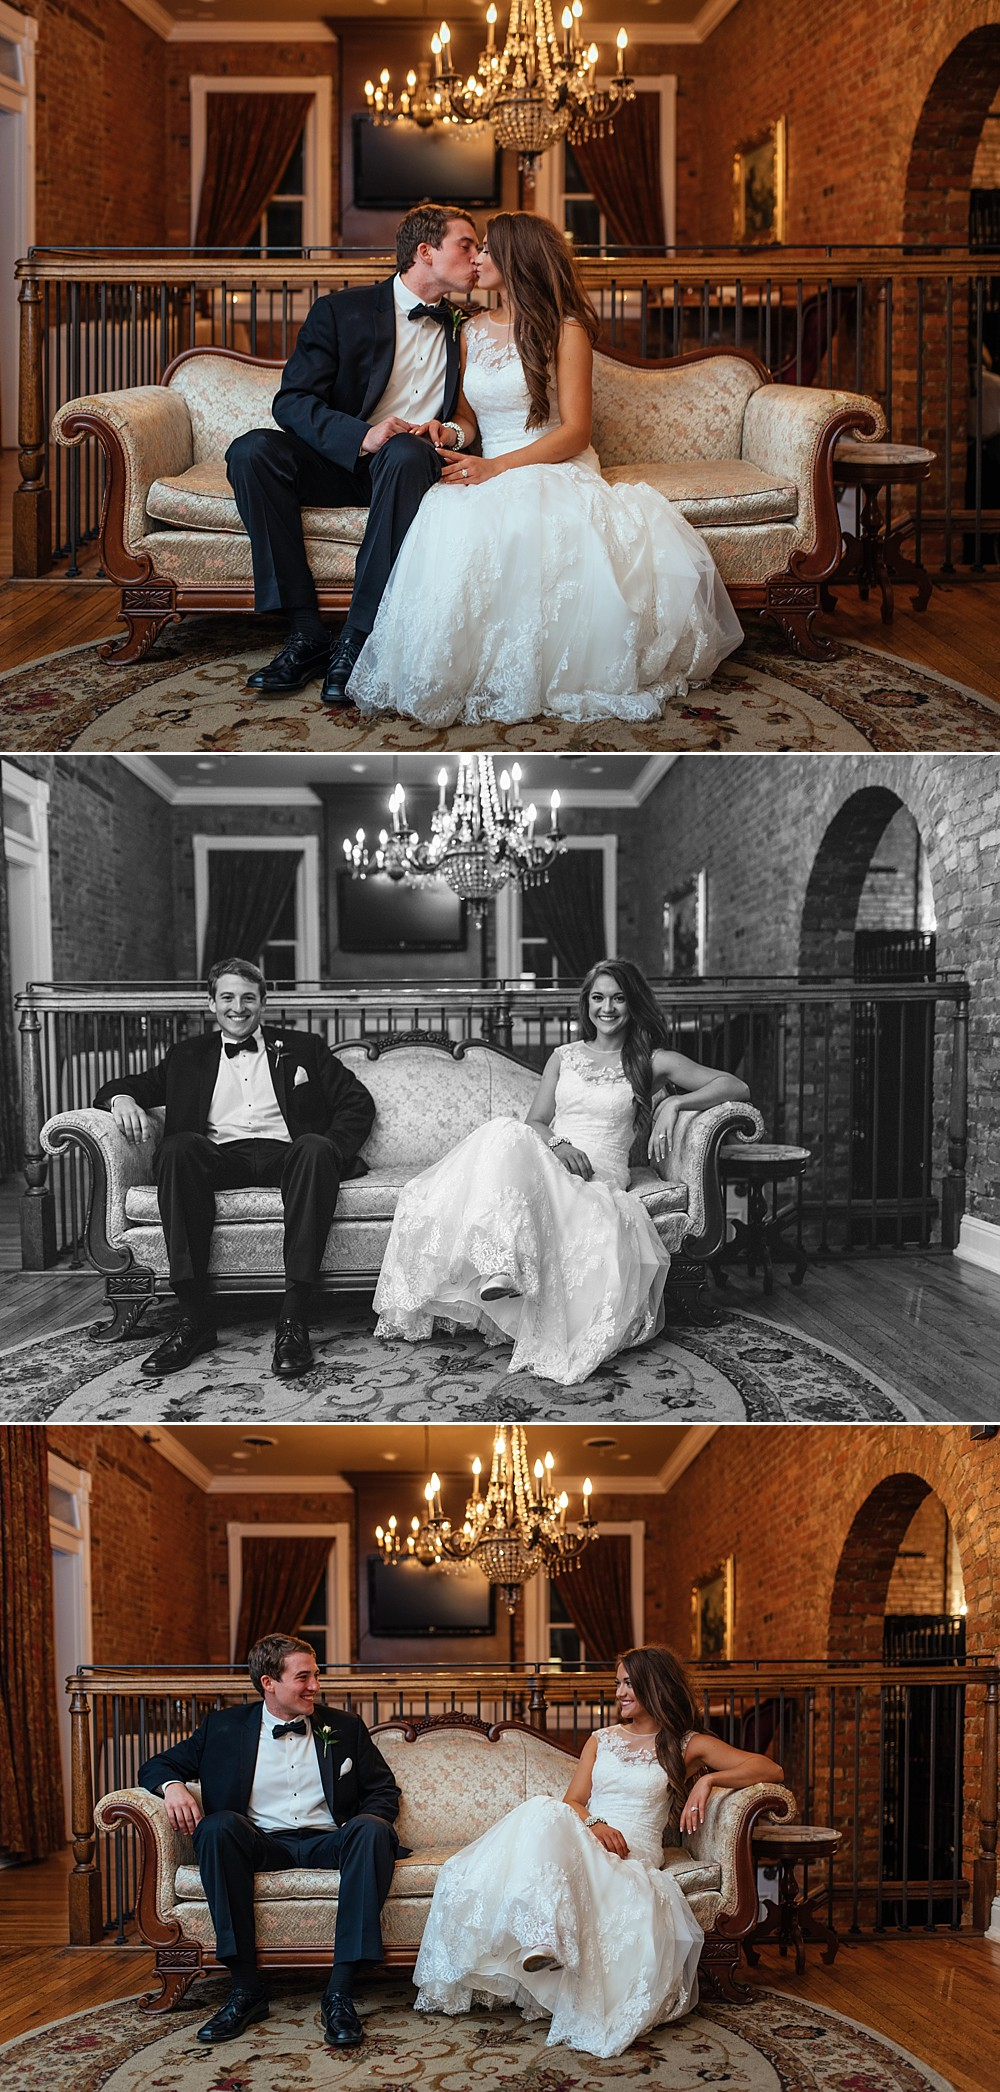 Bride + Groom portraits - Reception at McConnell House, Historic, Downtown Franklin=